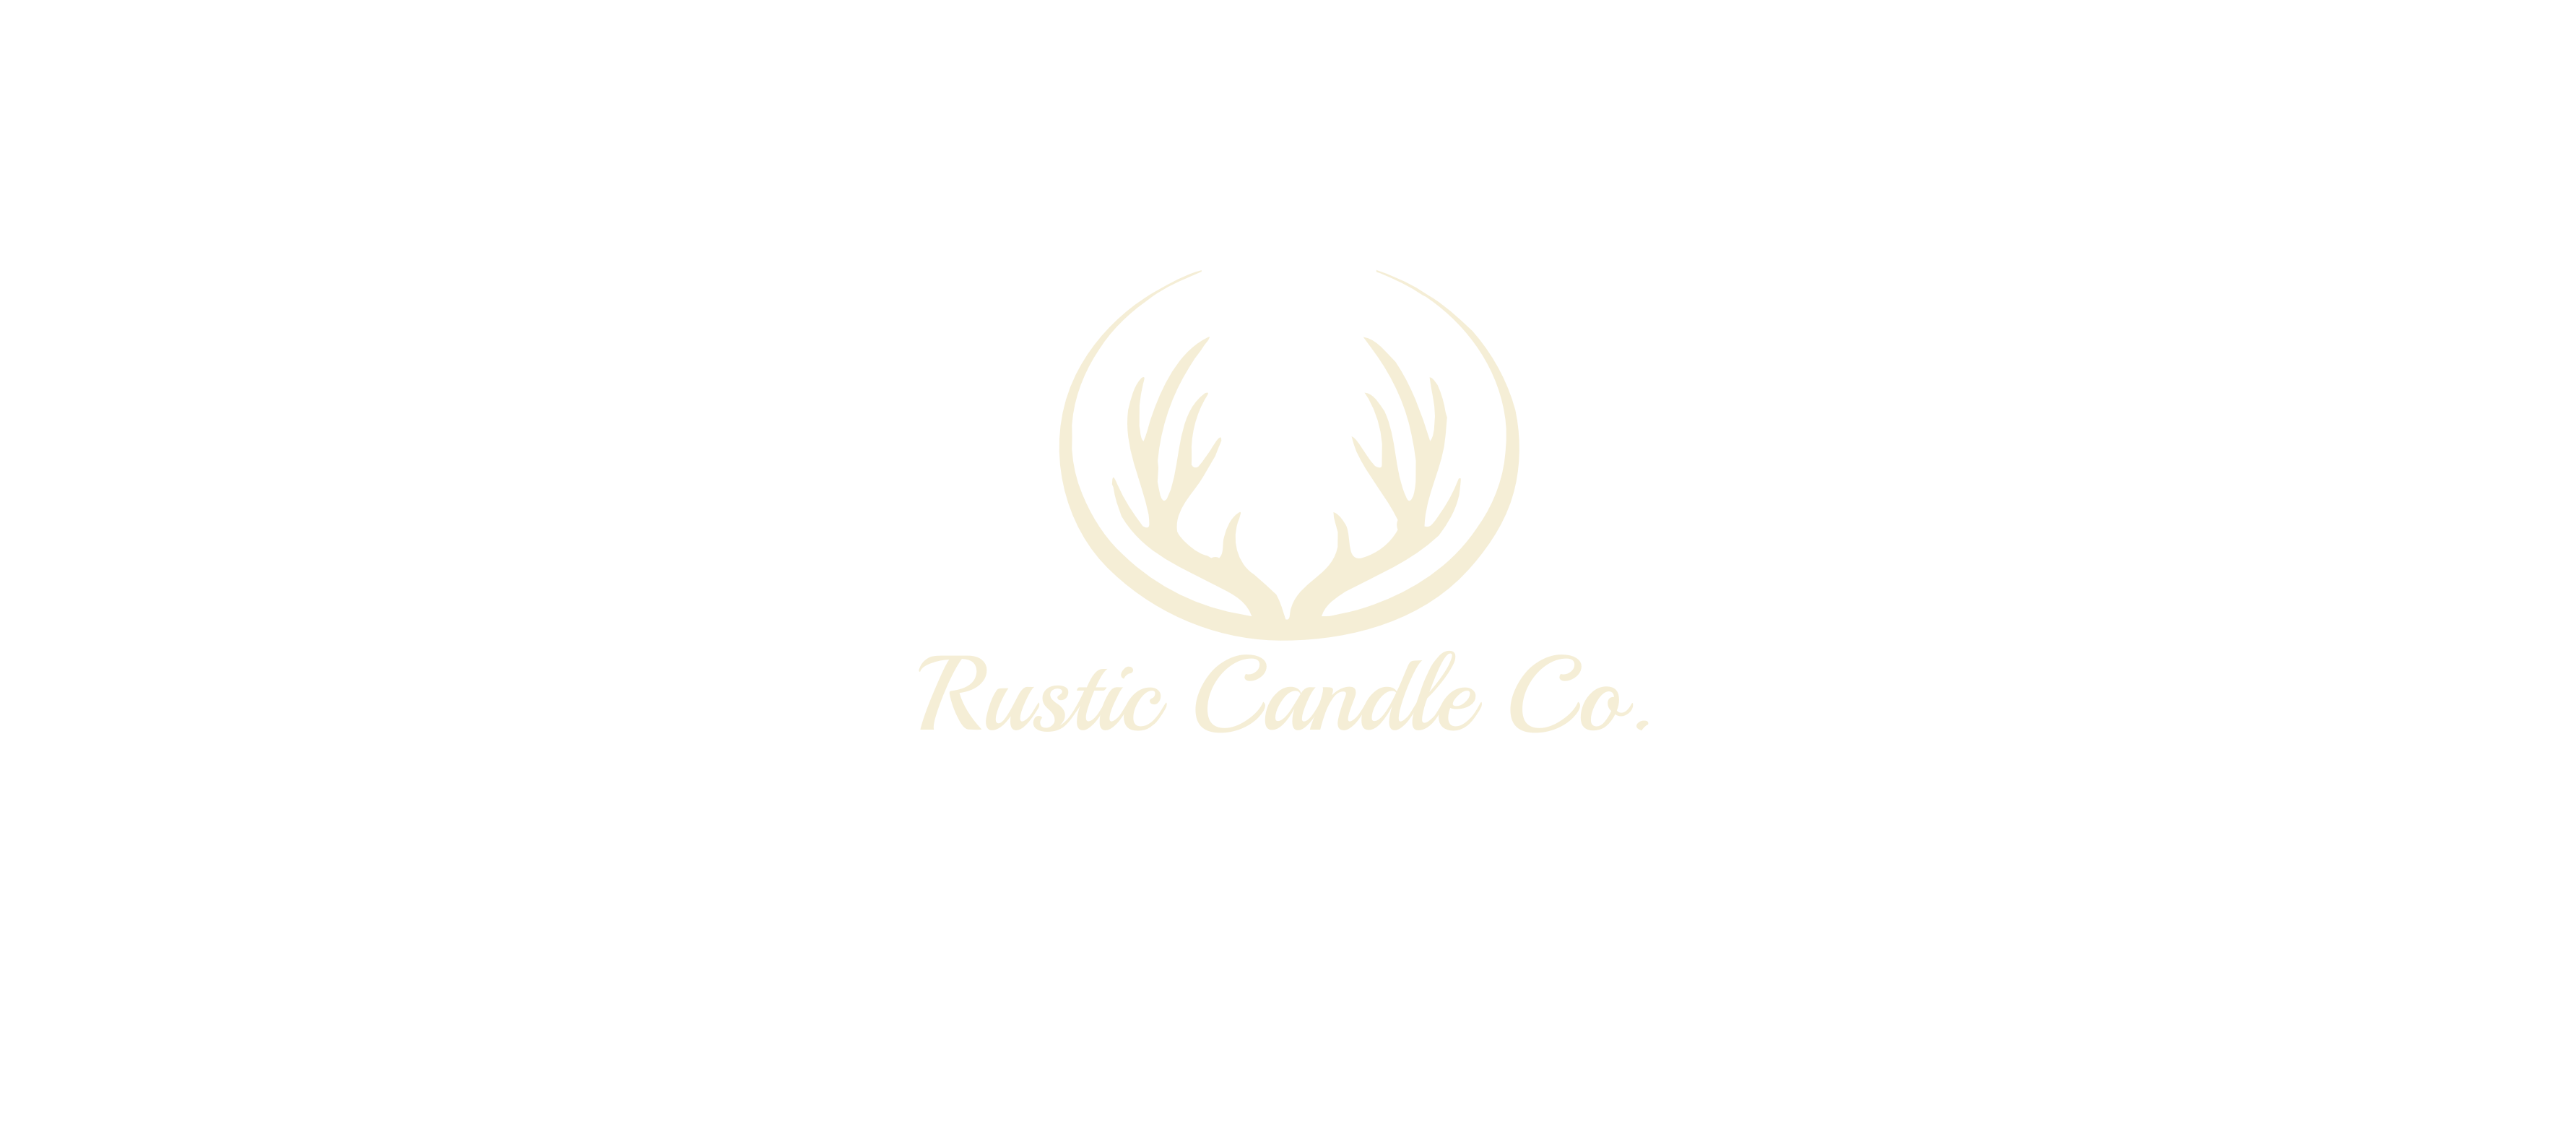 Rustic Candle Co